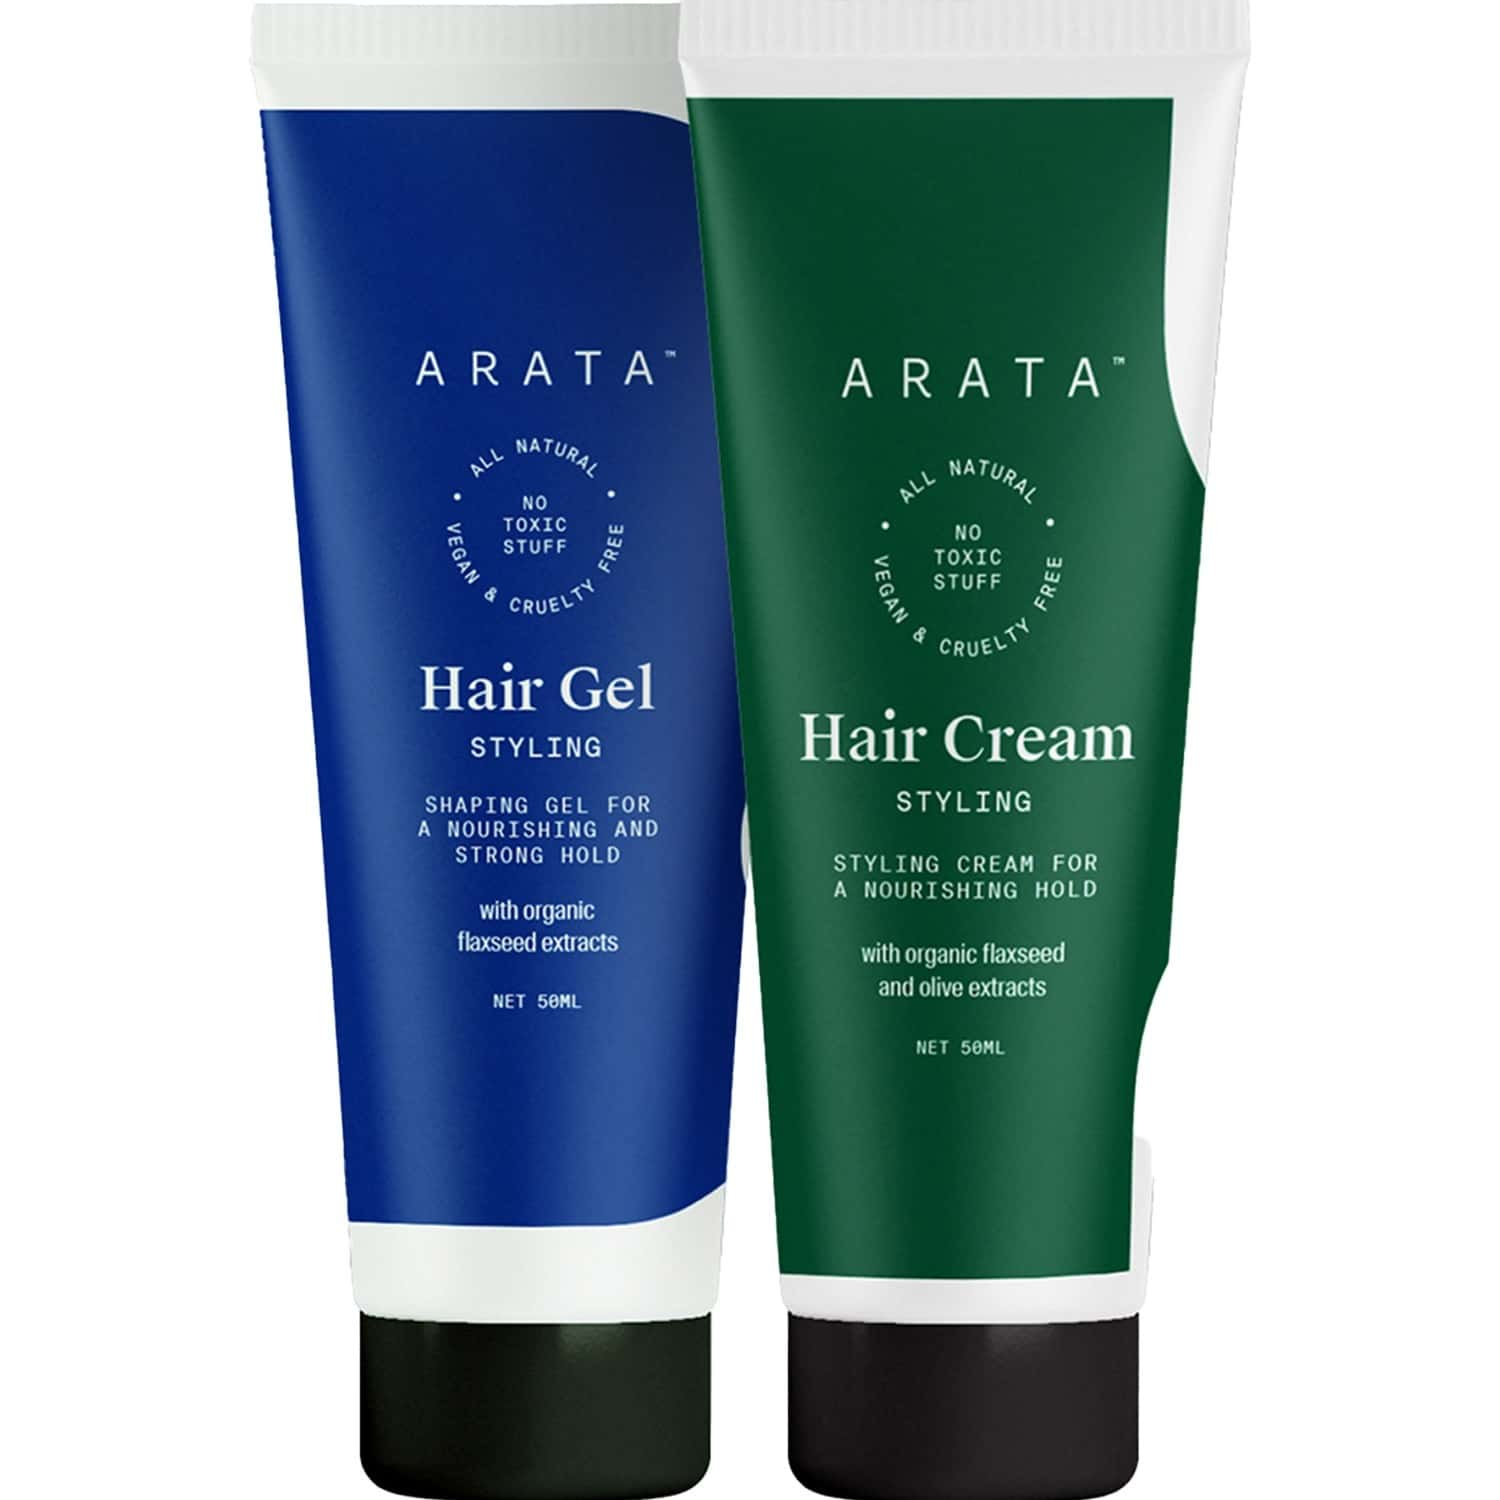 Arata Natural Hair Styling Combo With Hair Gel(50 Ml) & Hair Cream(50 Ml) For Women & Men    All Natural,vegan & Cruelty Free    For Nourishing ,styling & Strong Hold